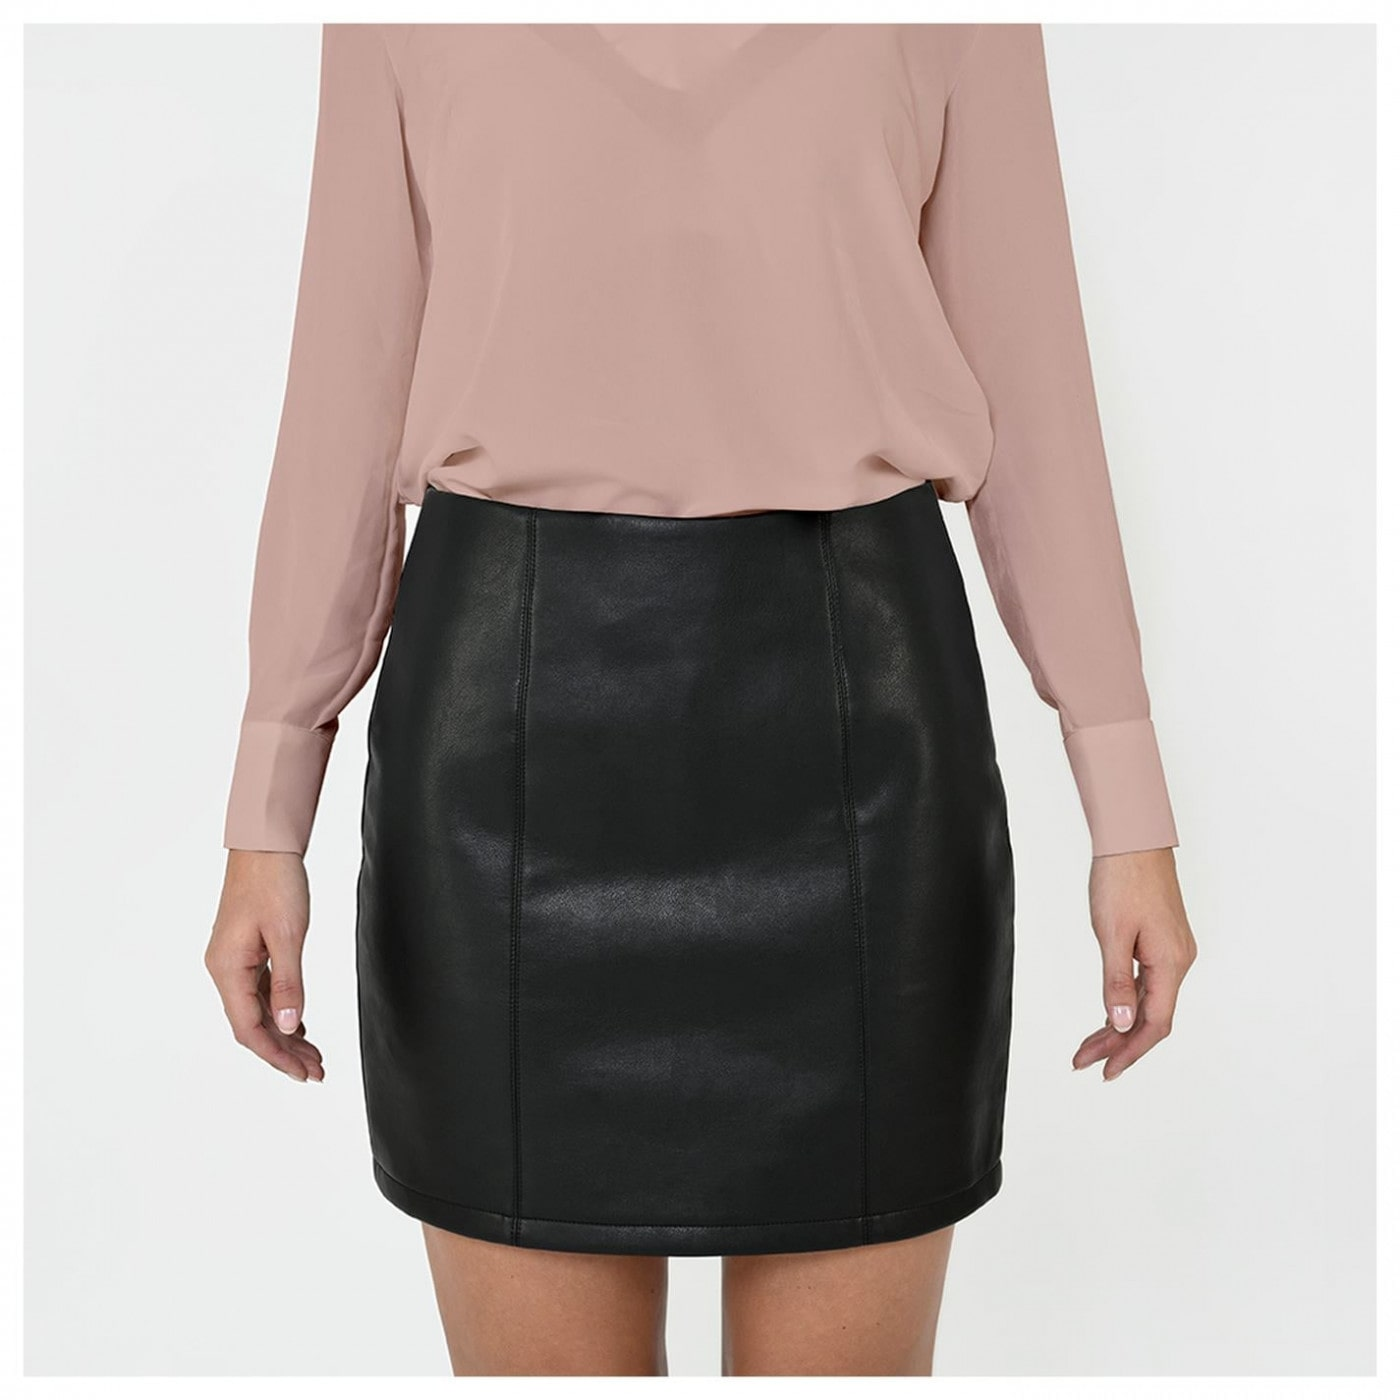 Firetrap Blackseal Black PU Skirt